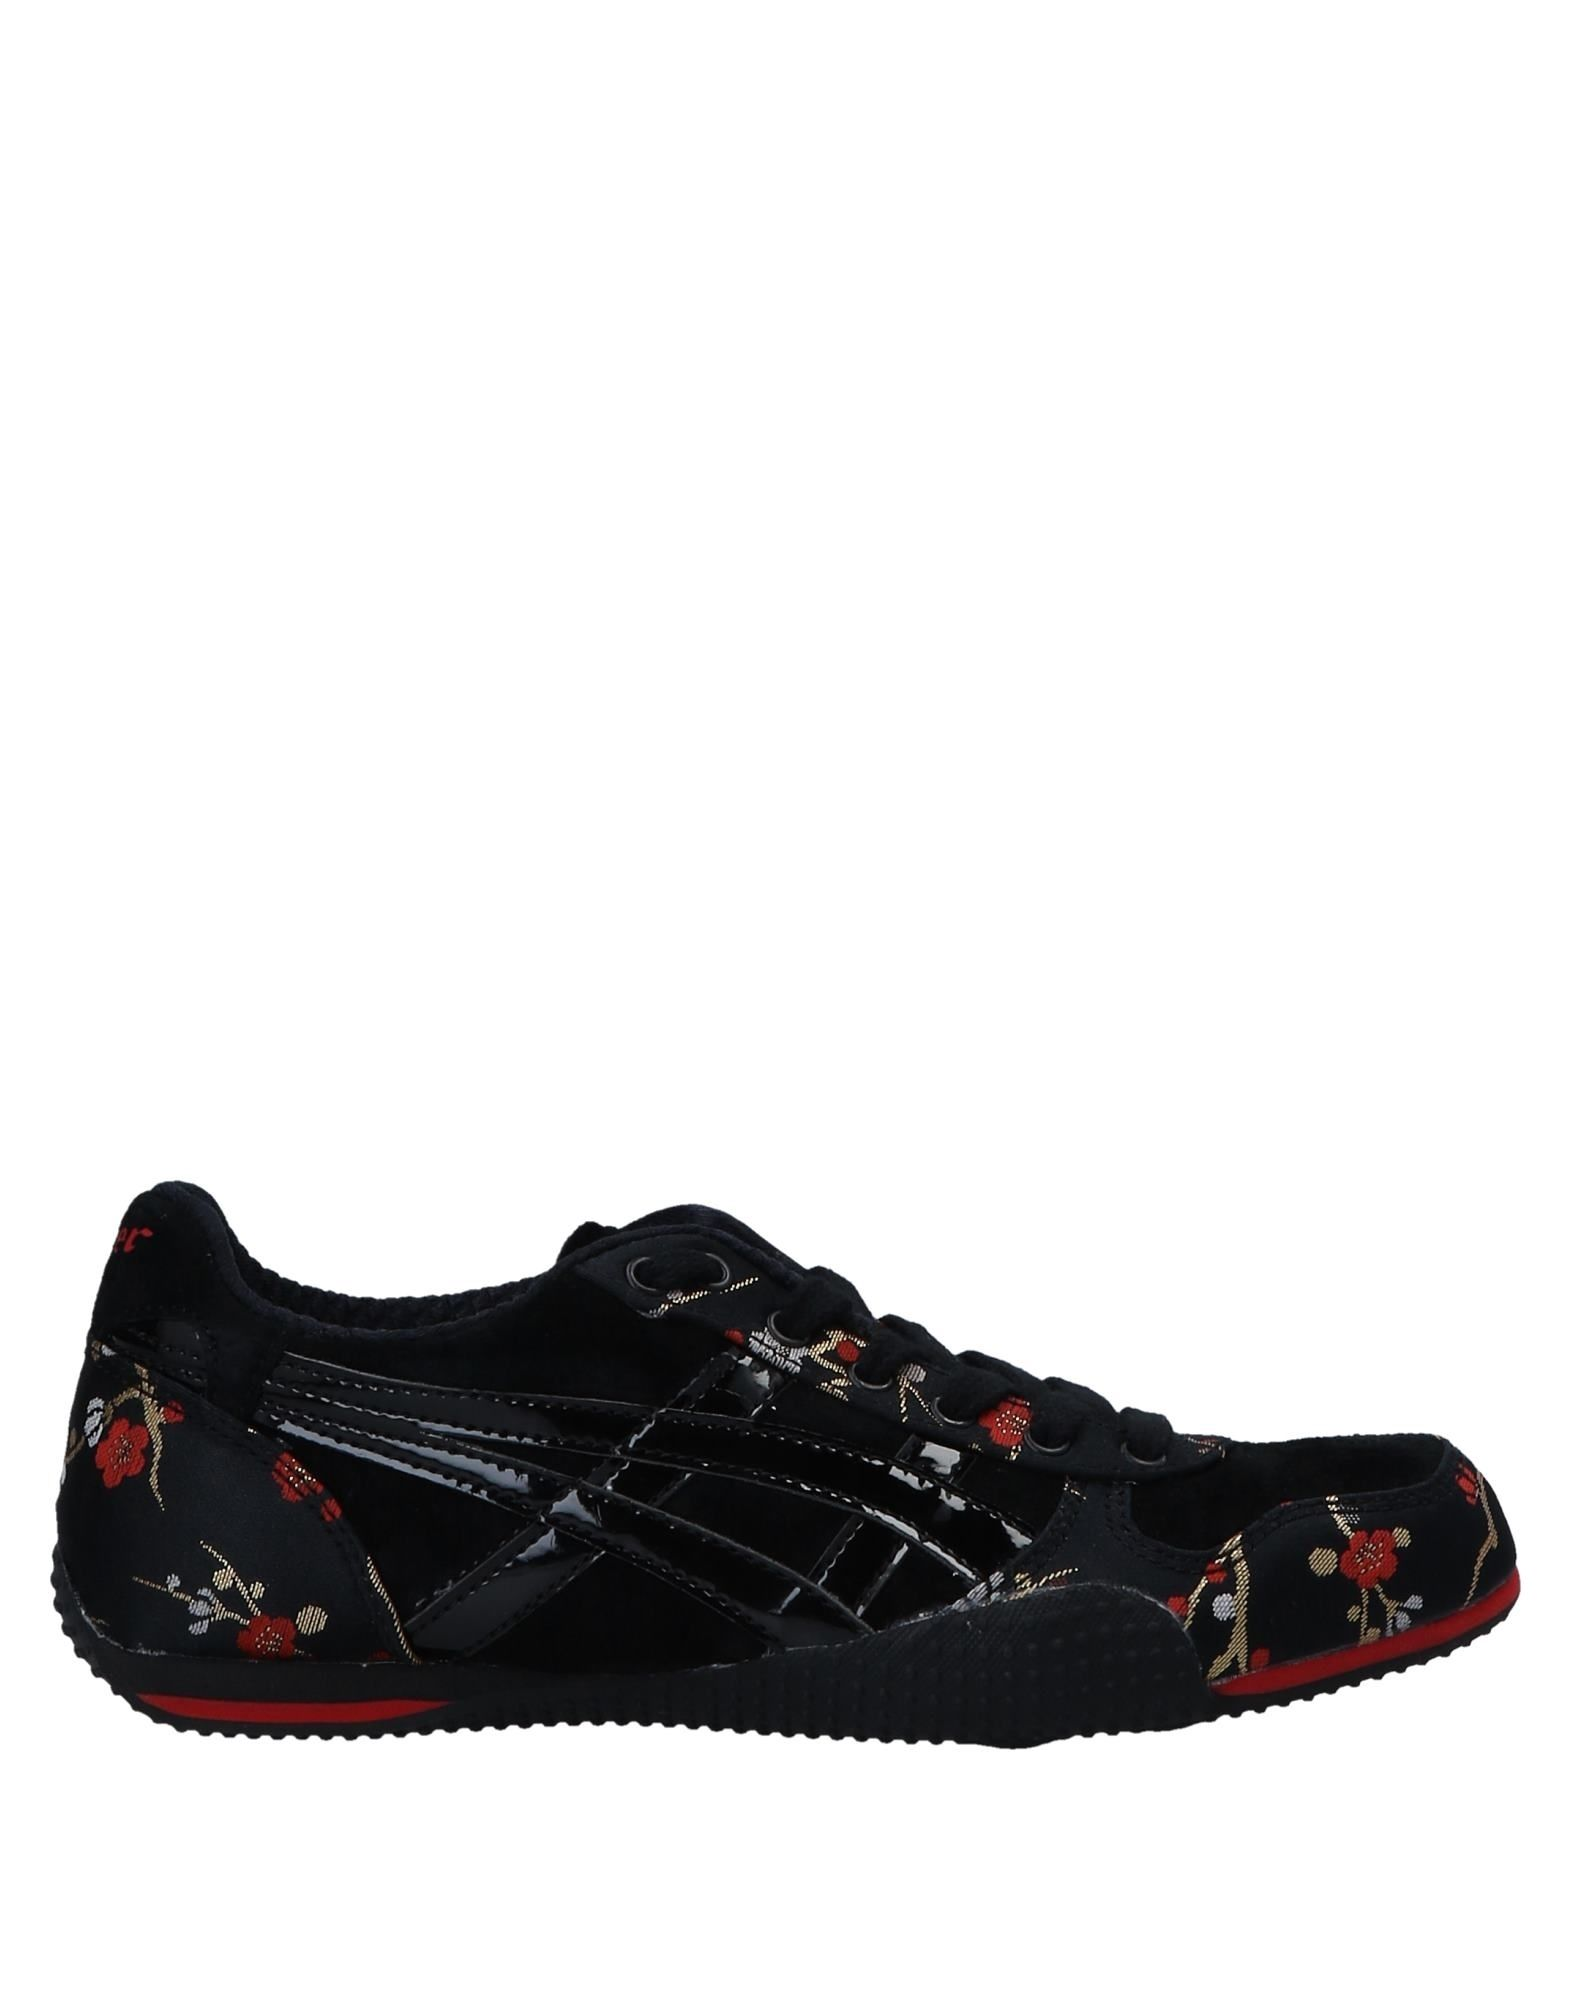 Onitsuka Tiger Sneakers - Women Onitsuka  Tiger Sneakers online on  Onitsuka Canada - 11558455ER 9a9a0b